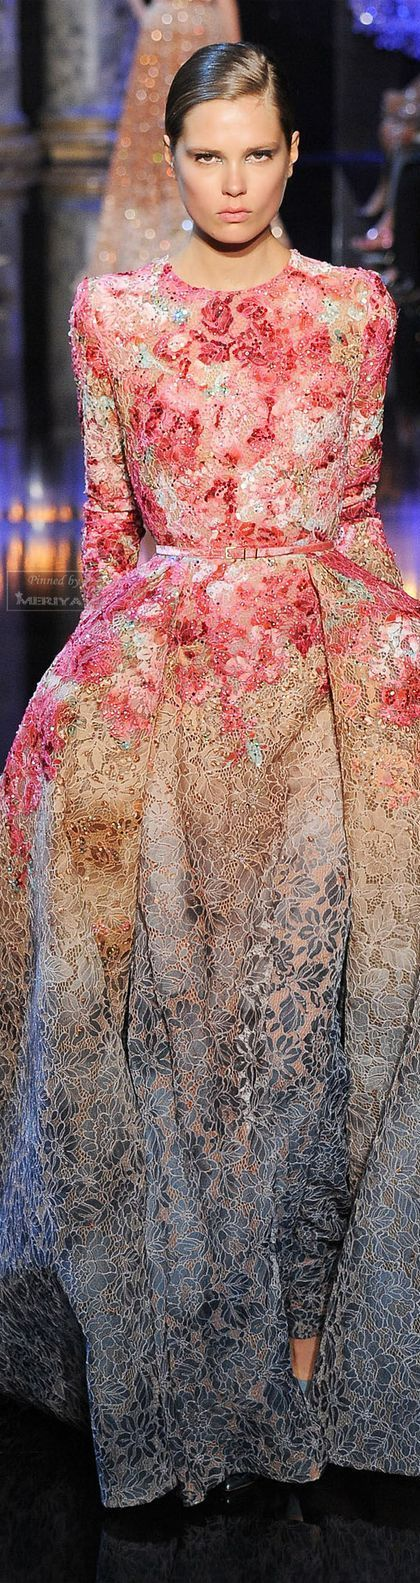 Elie Saab Fall 2014-2015 Couture                                                                                                                                                      More